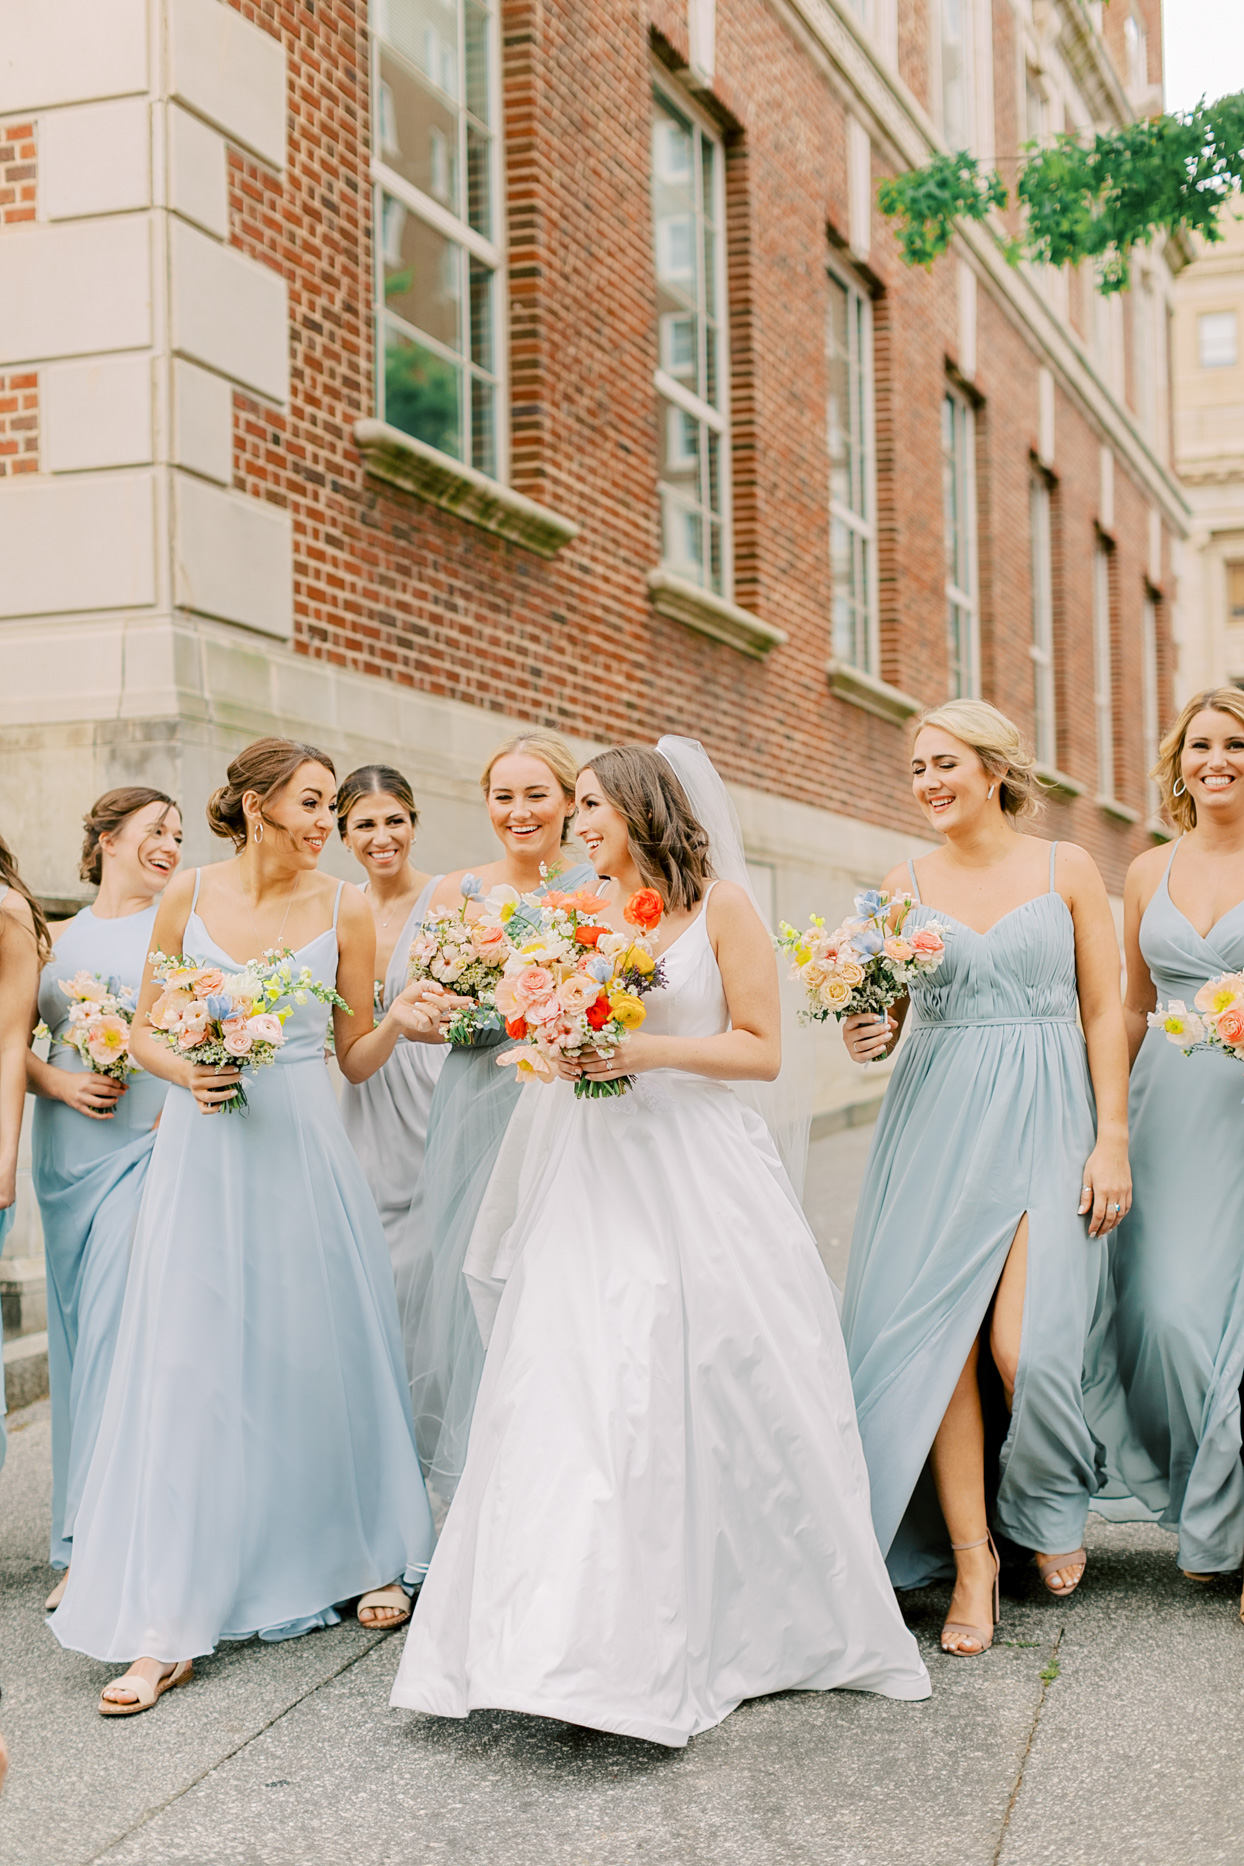 bride walking with bridesmaids wearing various styled pale blue dresses